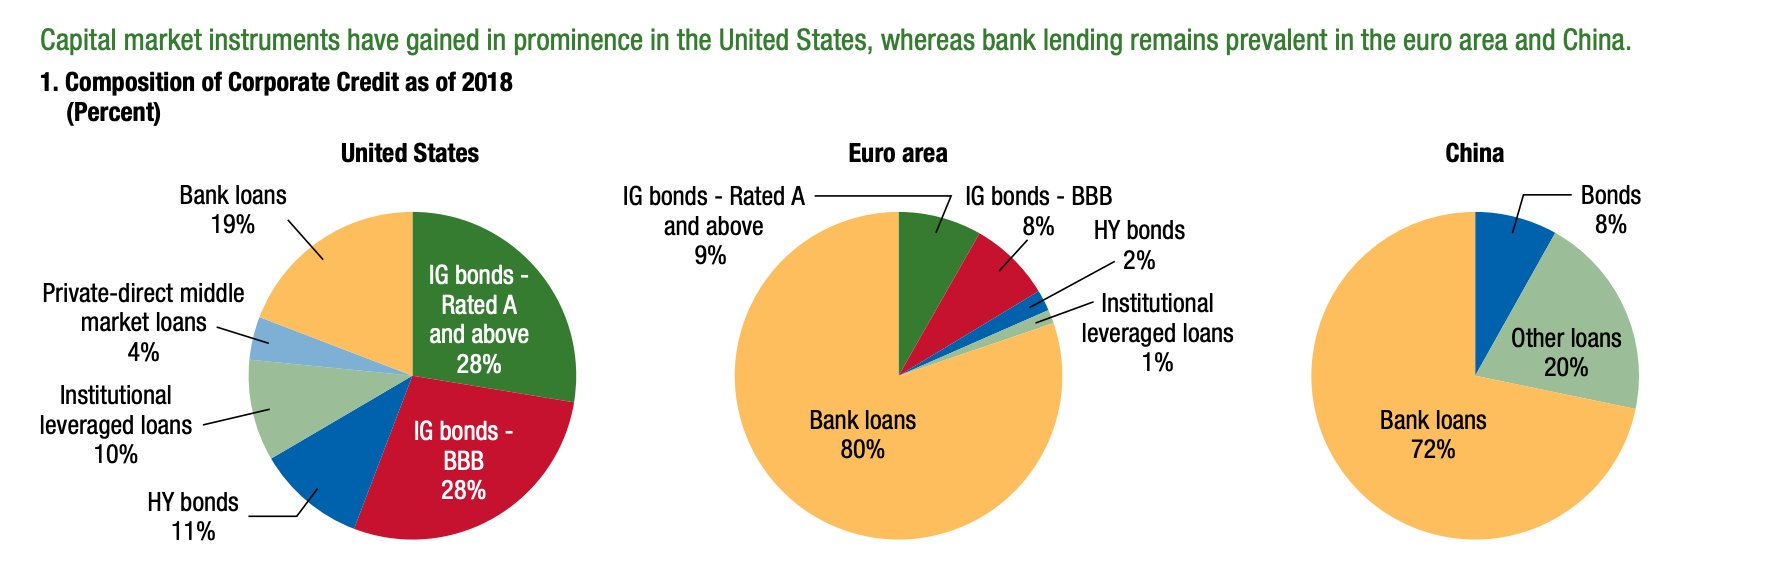 Bank loans acct for only…